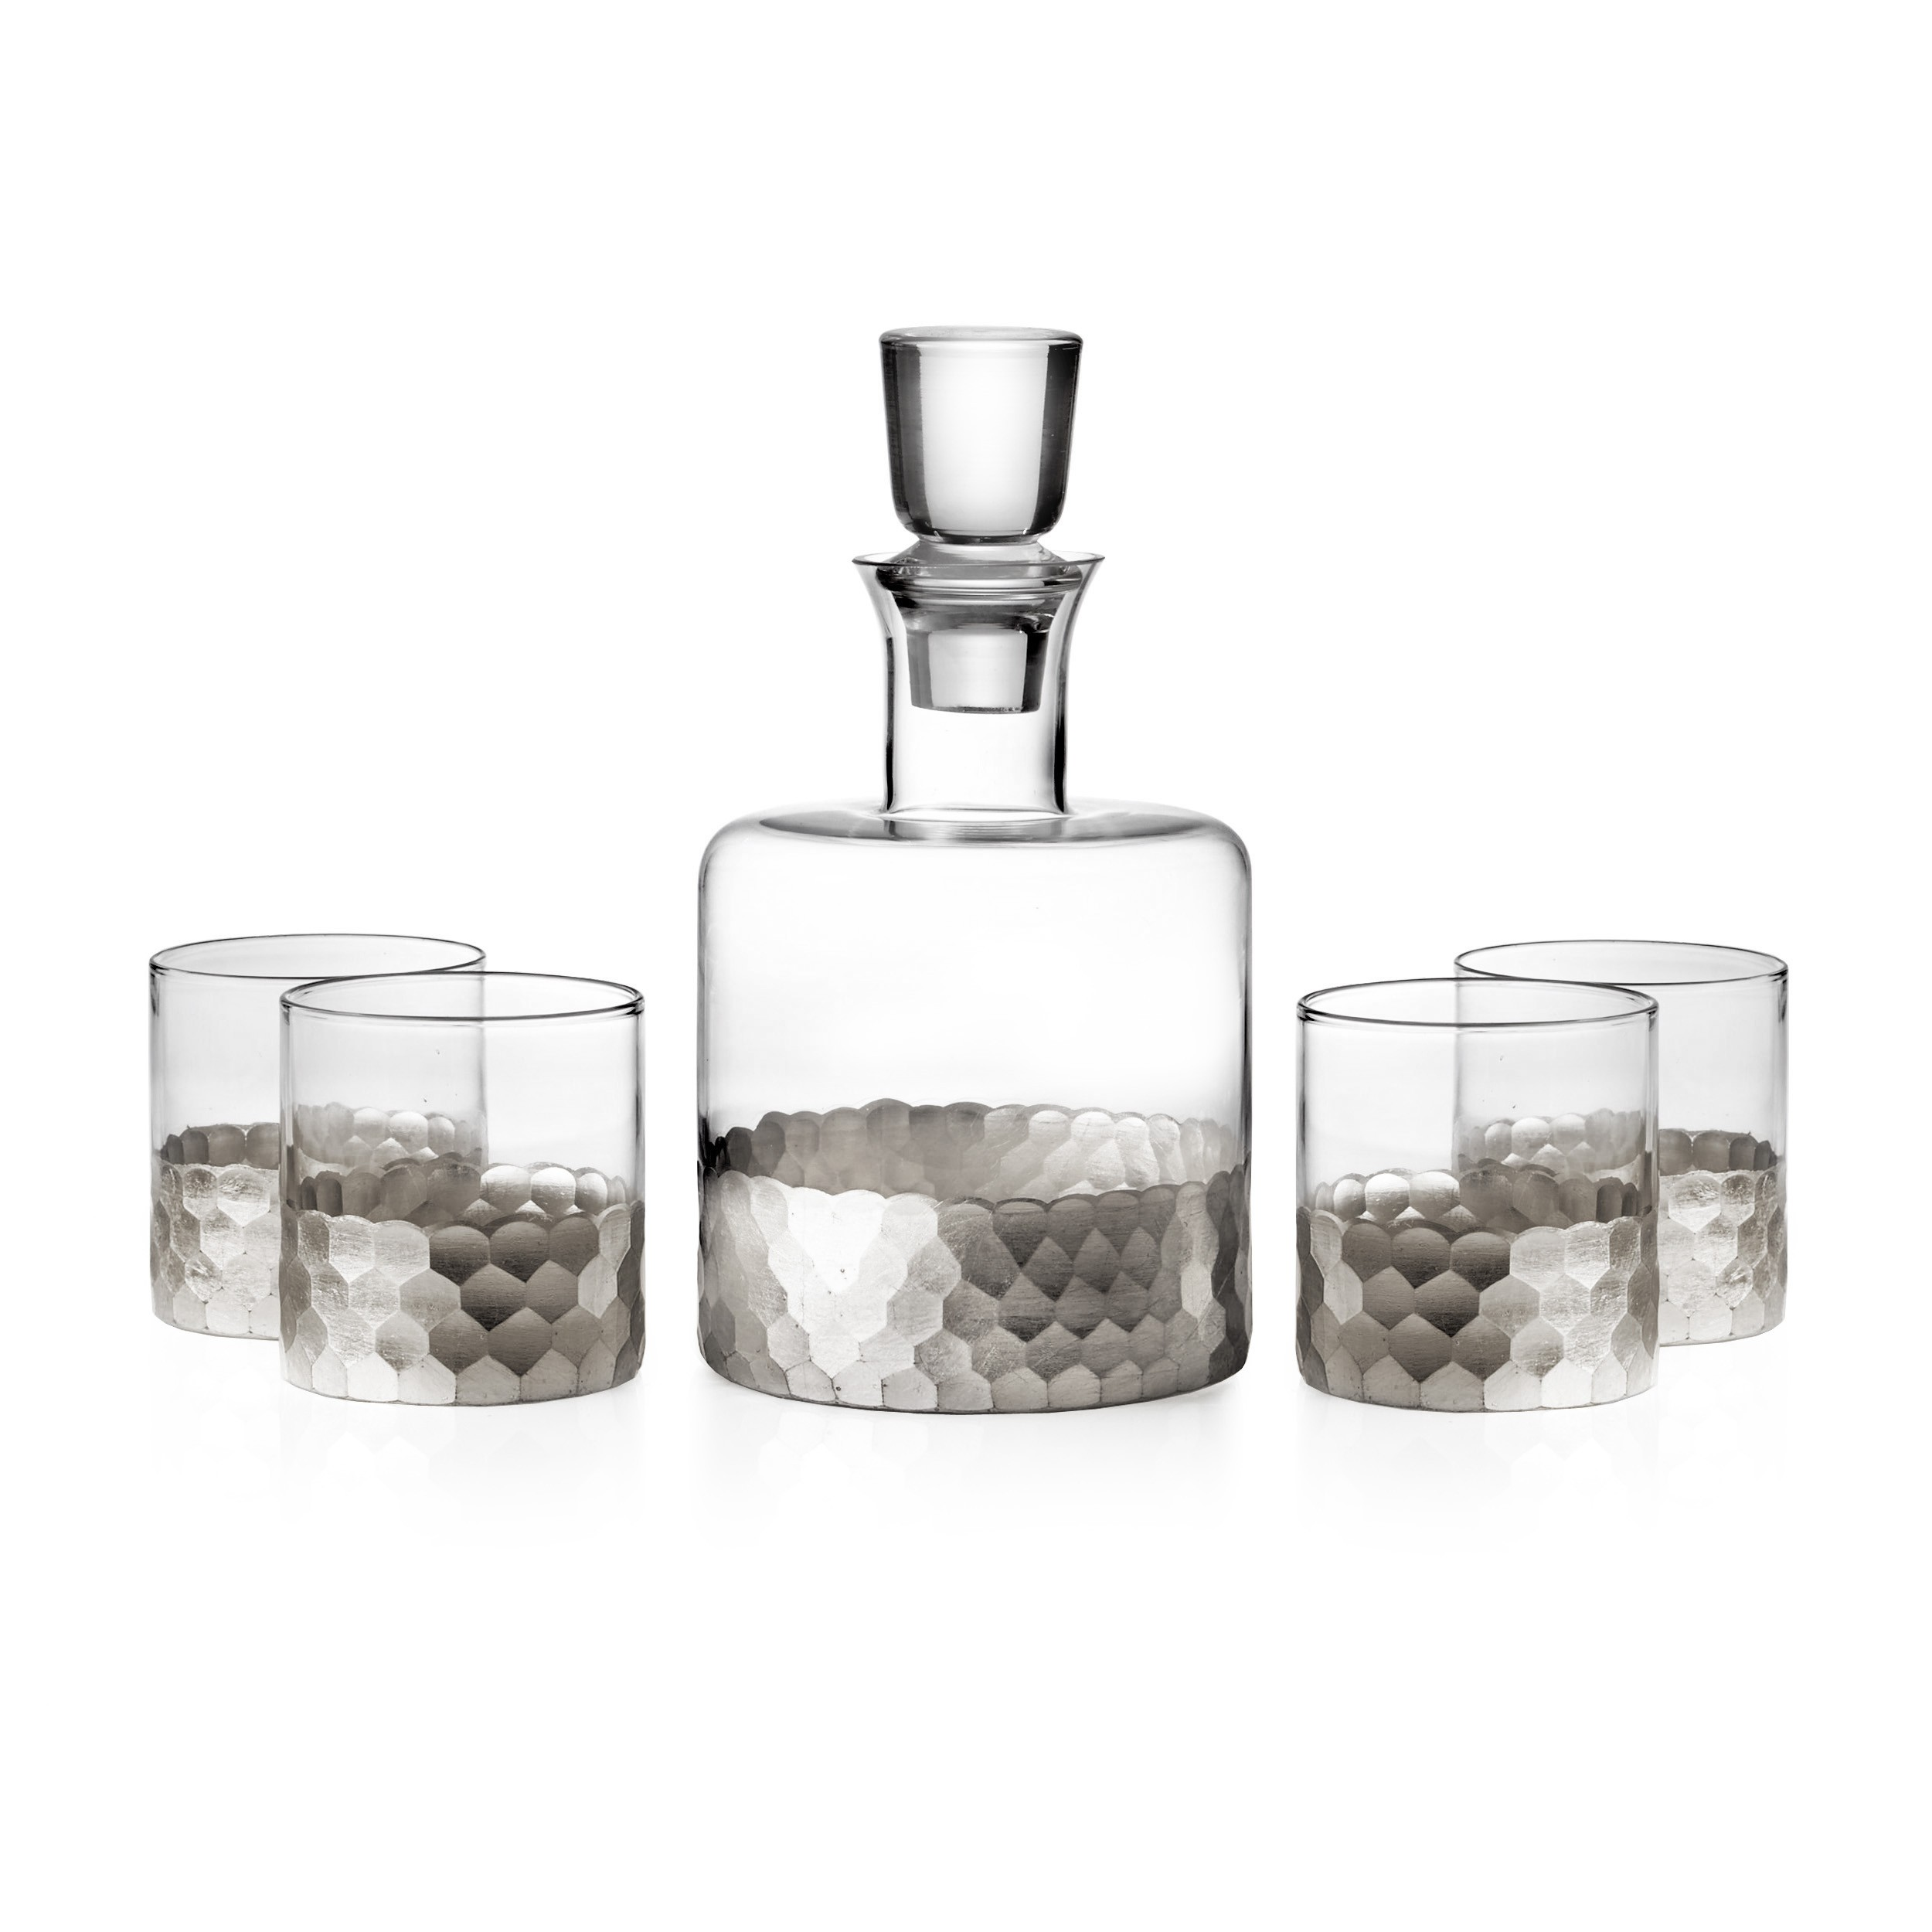 Beautiful decanter set for dining sets ideas with crystal decanter set